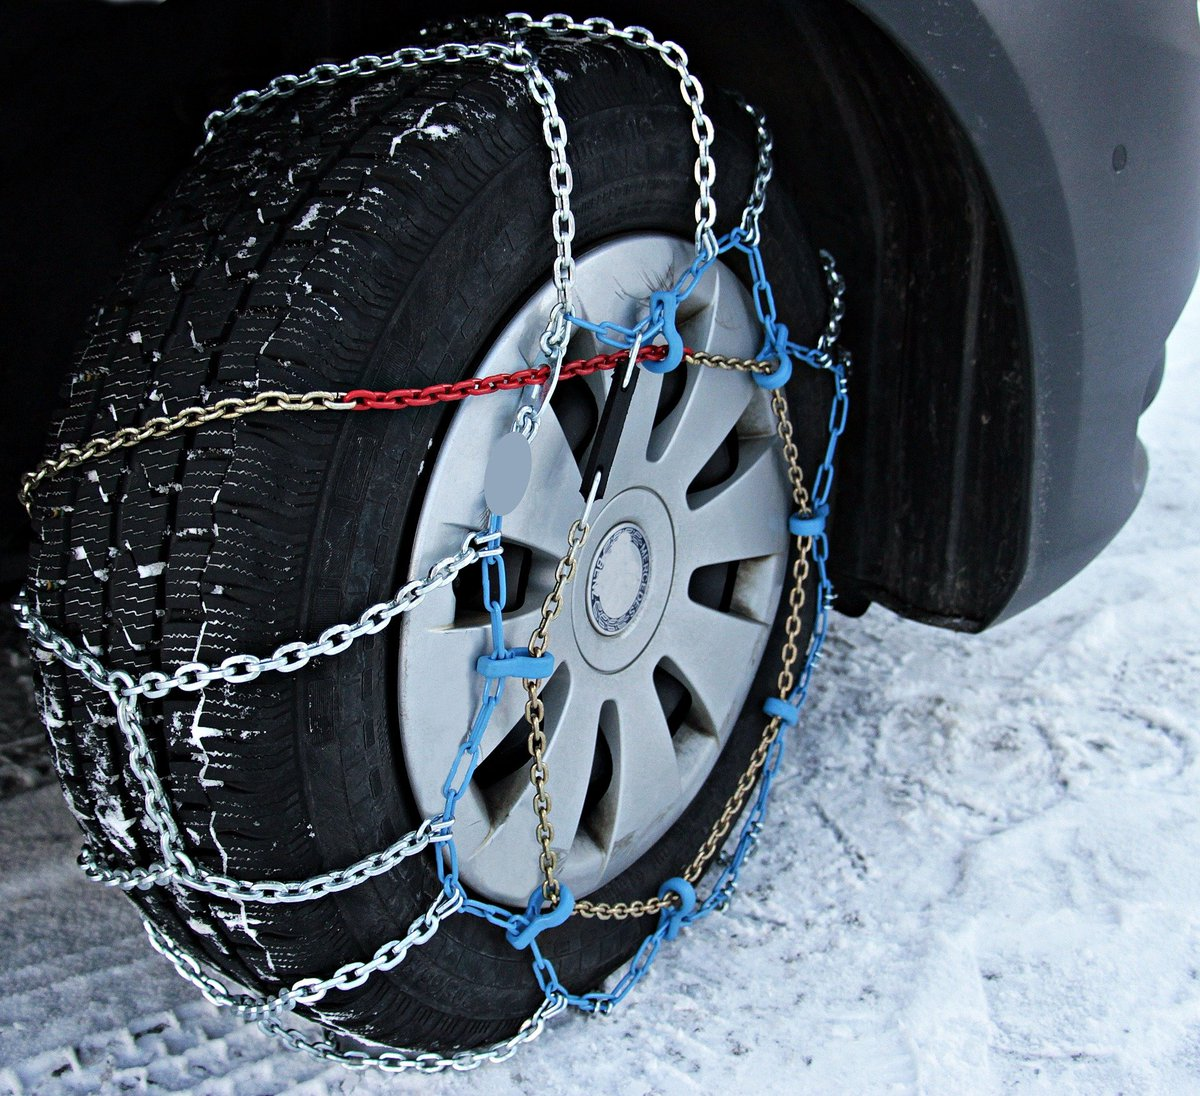 https://360tv.ru/media/uploads/article_images/2019/11/54683_snow-chains-3029596_1920.jpg